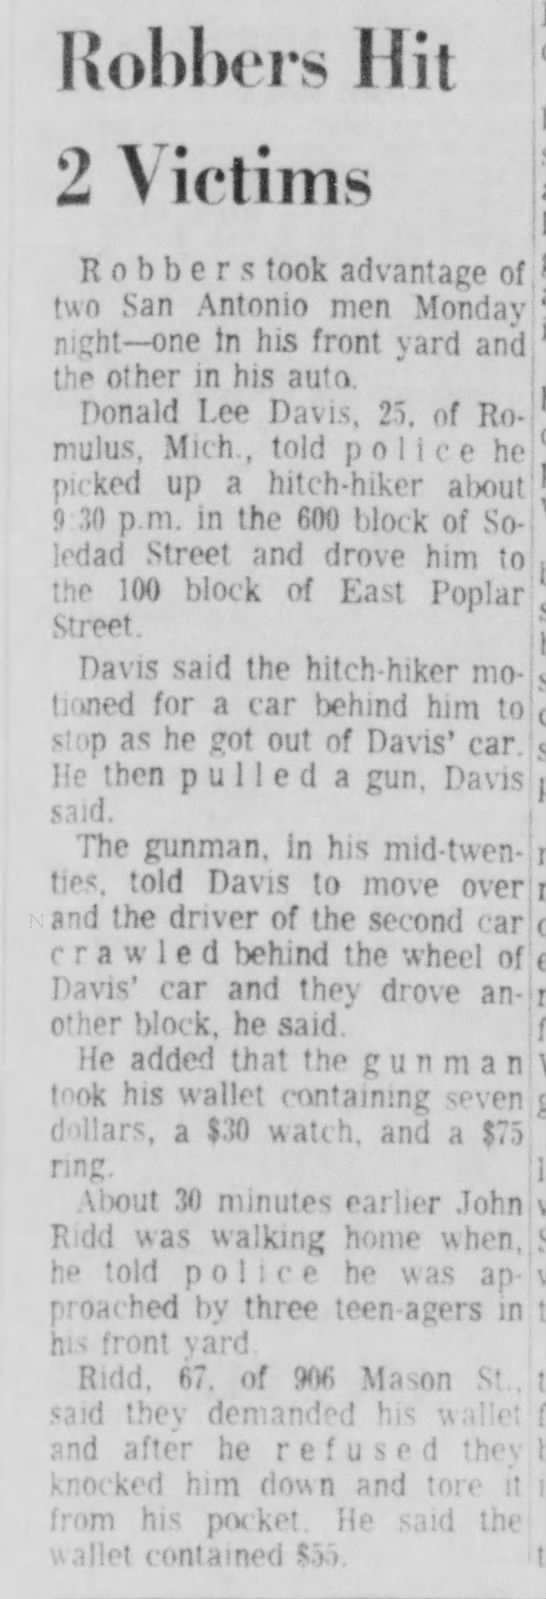 John Ridd News Article on Robbery